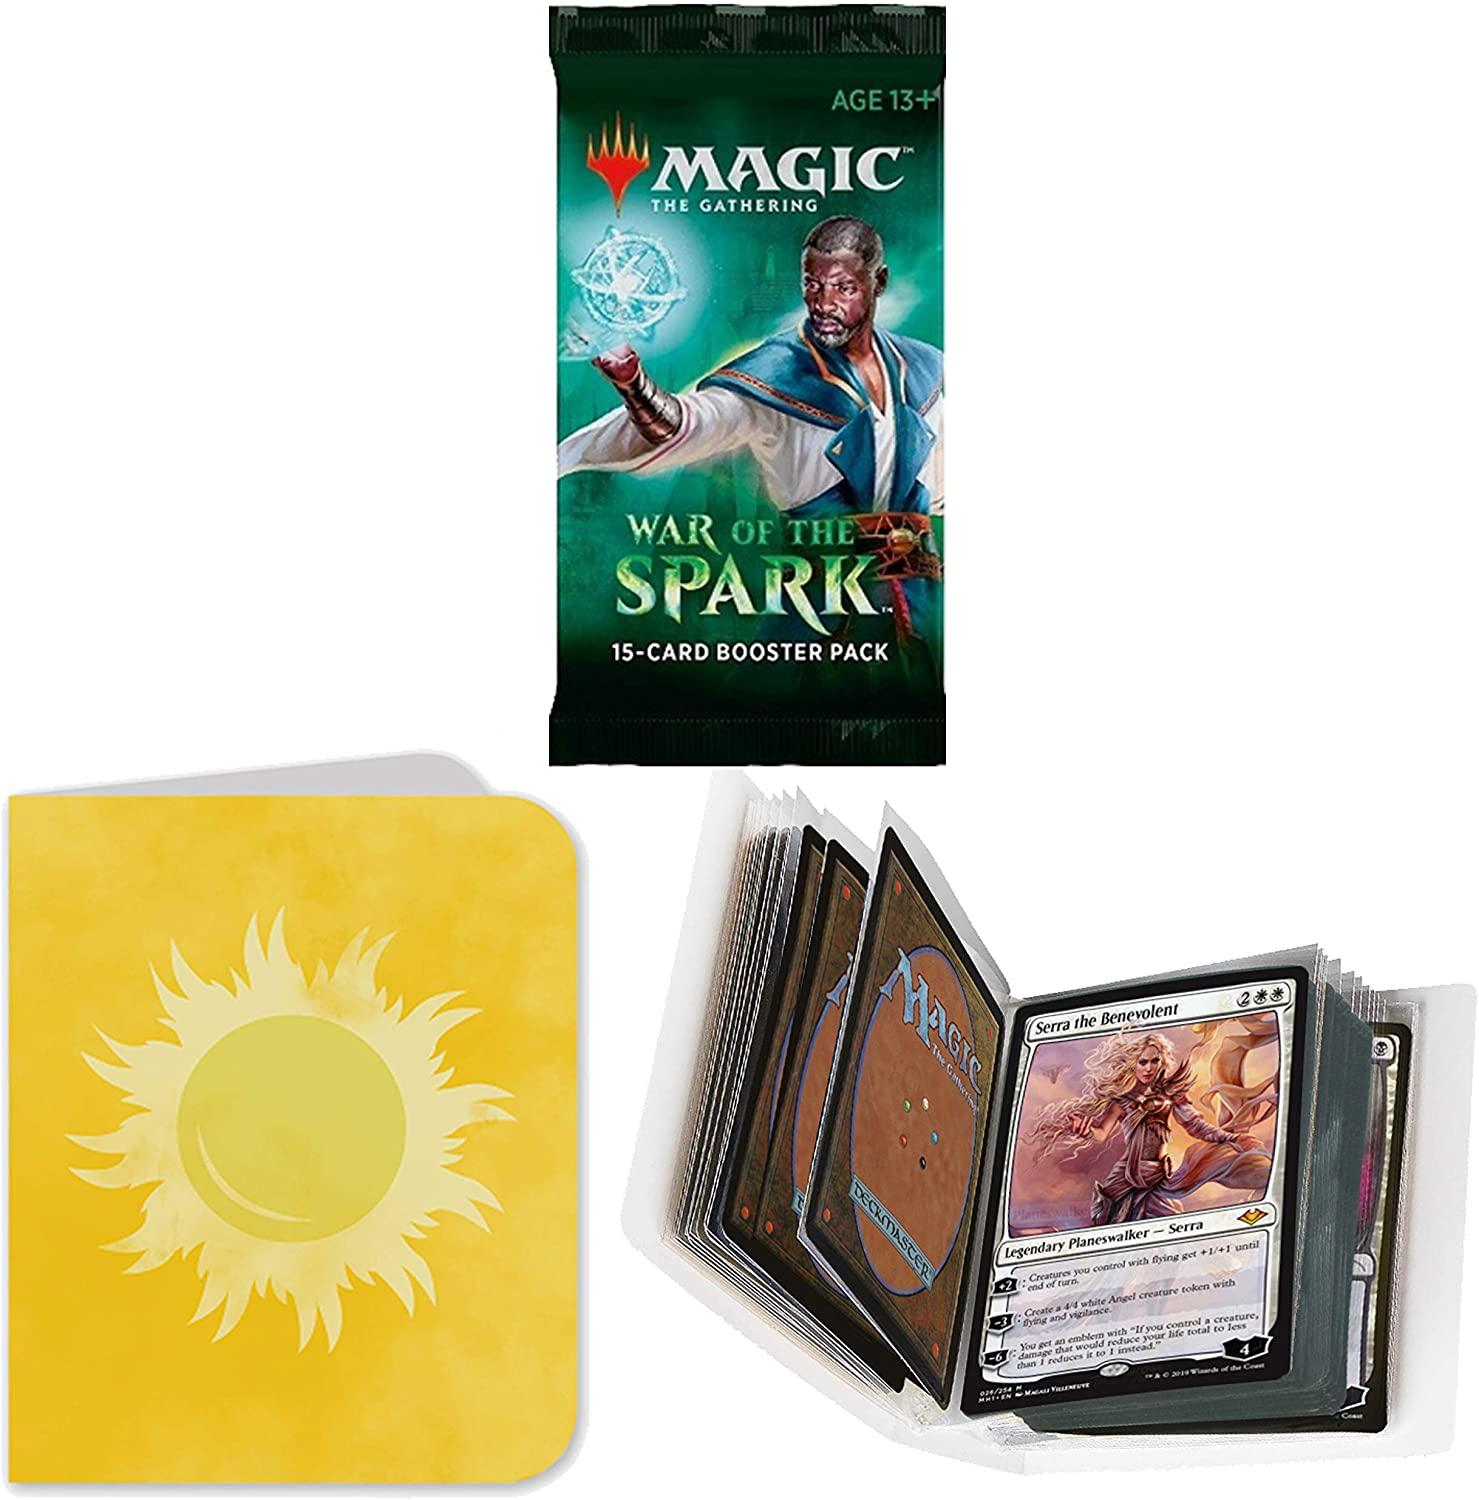 Totem World 1 Booster Pack of Magic The Gathering War of The Spark with a Totem Plains Mana Symbol Mini Binder Collectors Album - One Pack for Booster Draft Lot Bundle